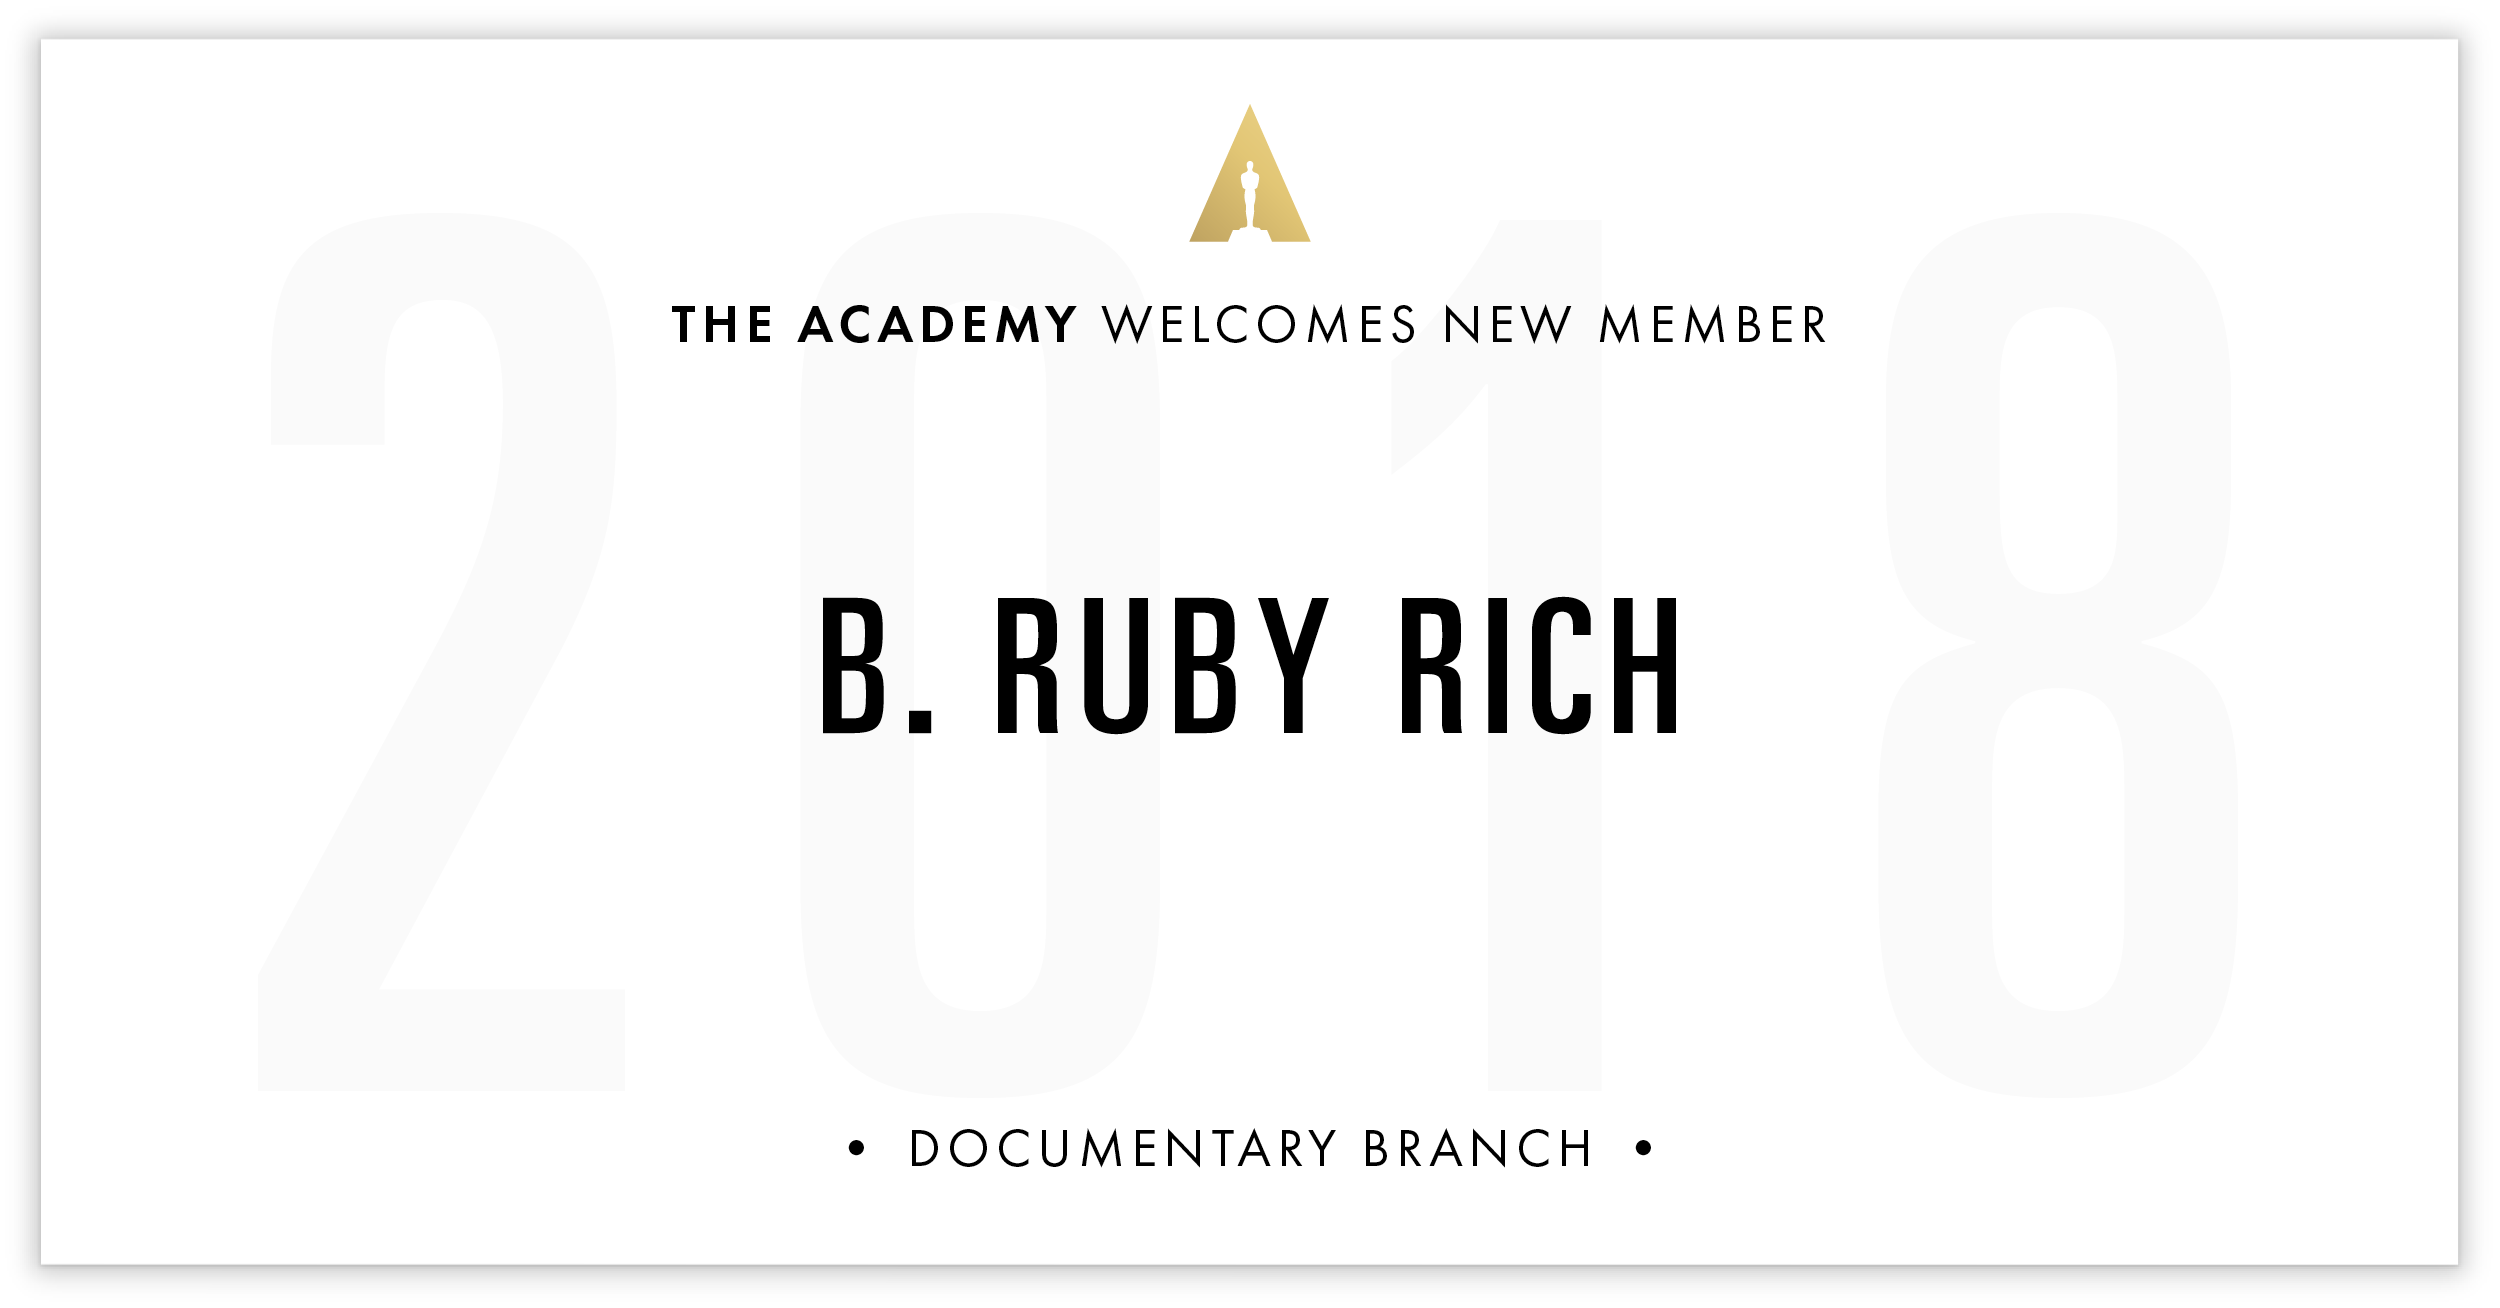 B. Ruby Rich is invited!